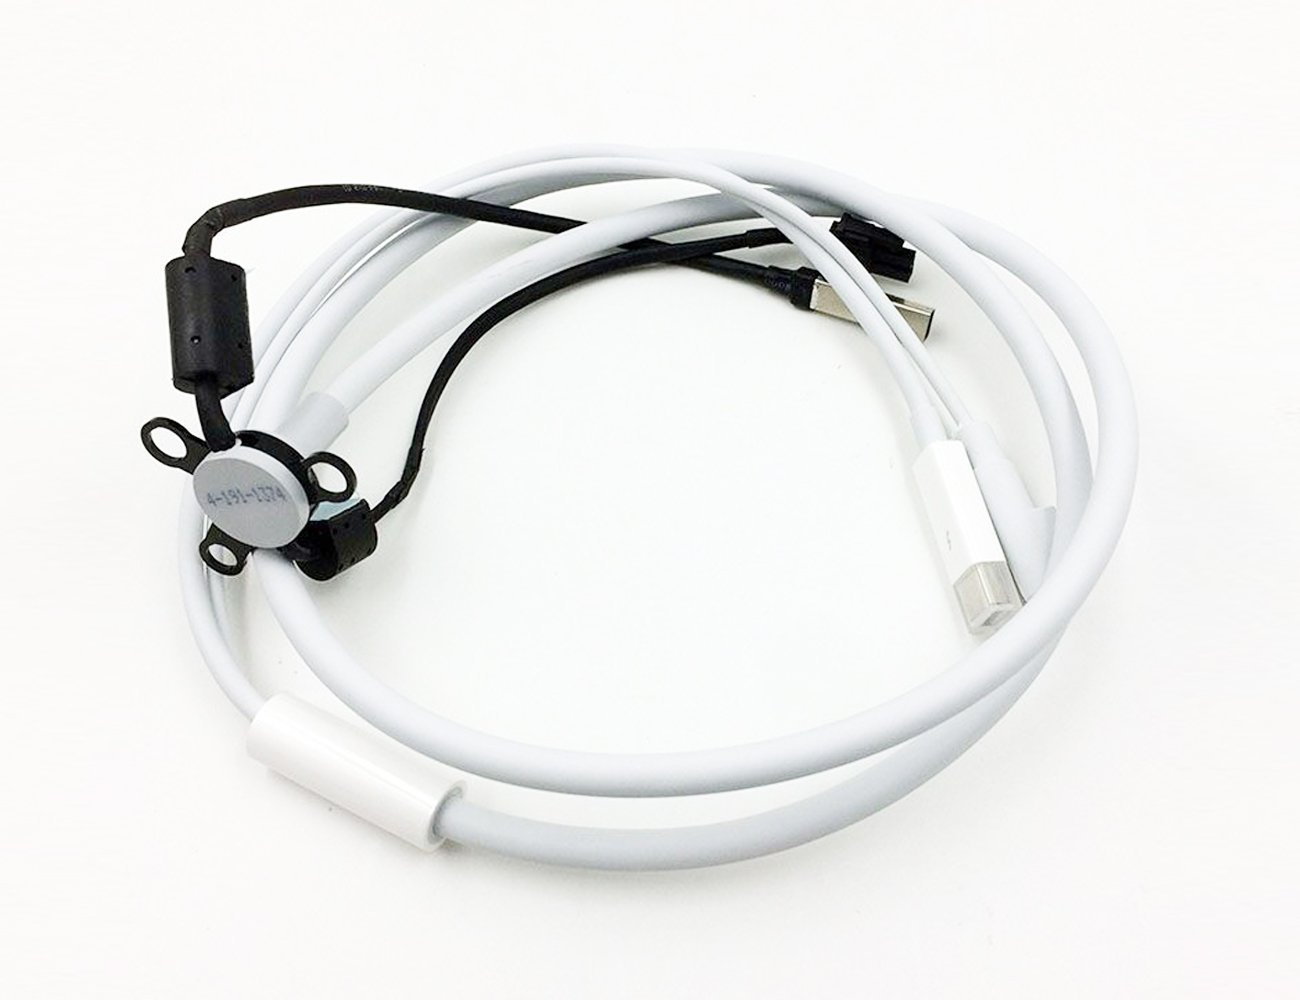 Willhom 922-9941 All-in-One Cable Replacement Apple Thunderbolt Cinema Display 27'' A1407 Mid 2011 (MC914LL/A)